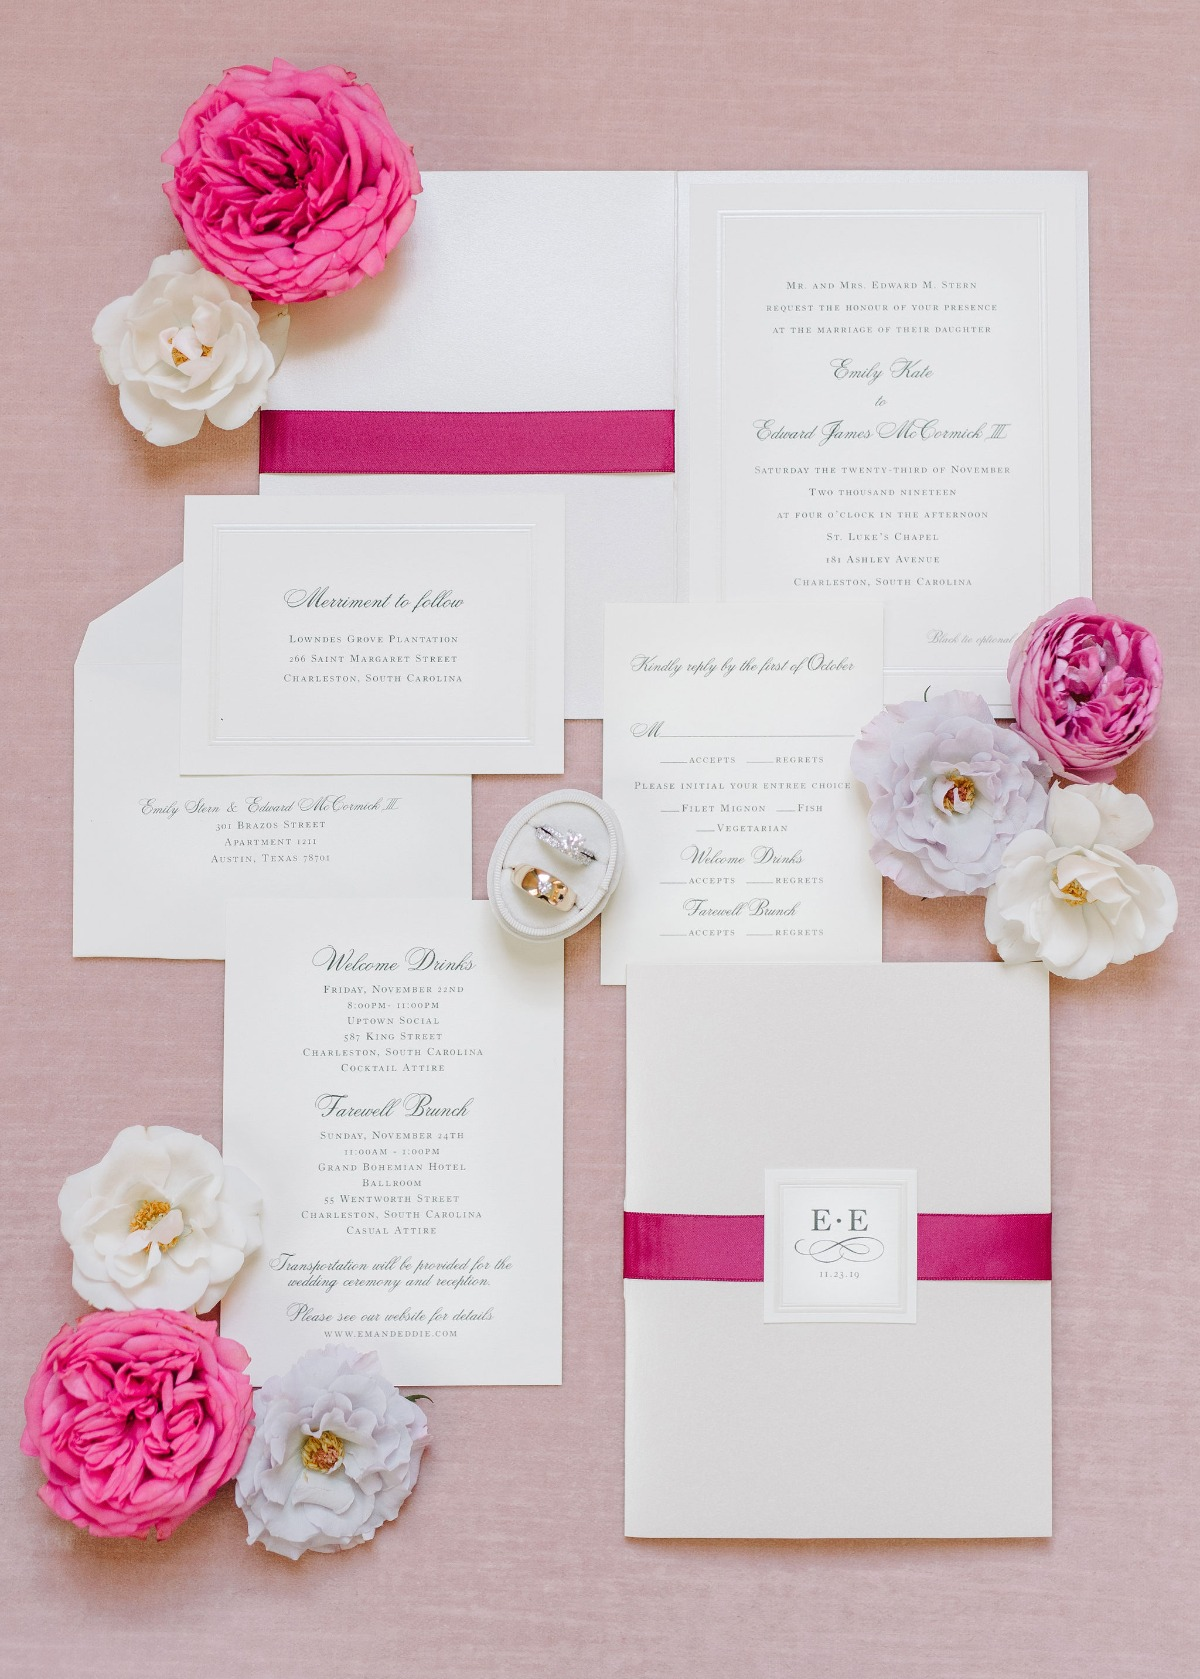 classic wedding invitations designed by J. Lily Design